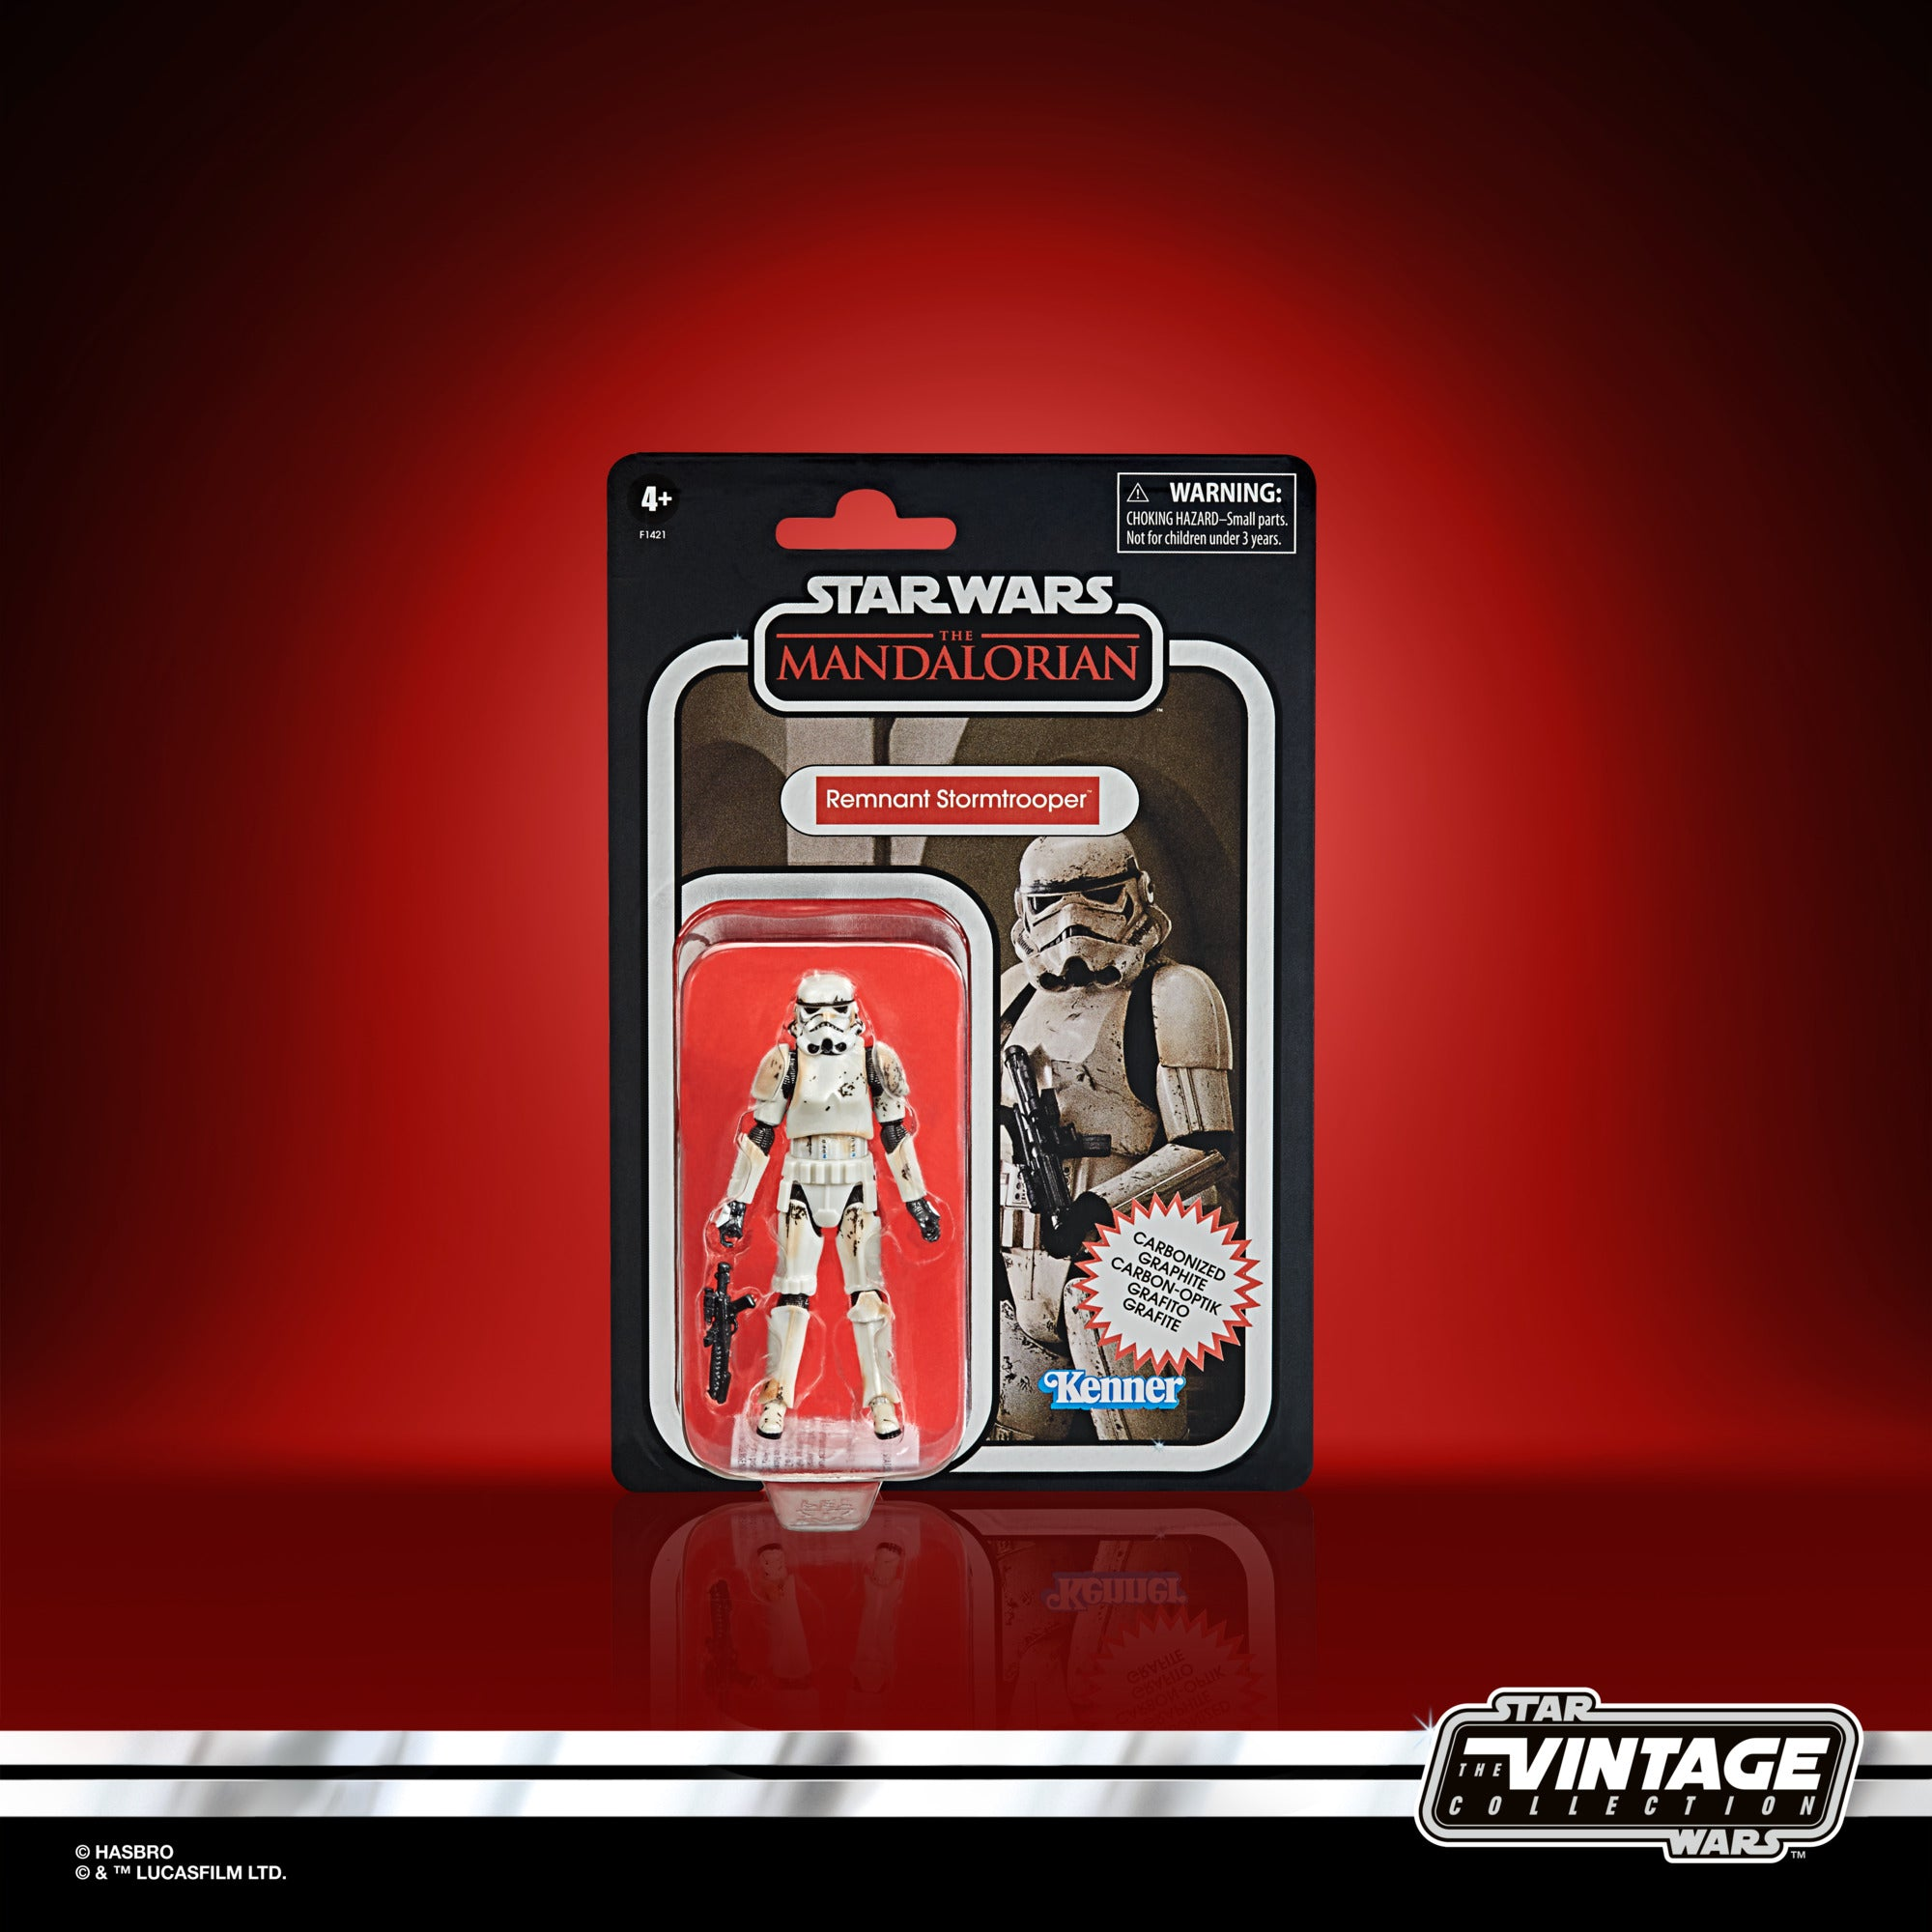 Star Wars: The Vintage Collection - The Mandalorian - Remnant Stormtrooper Carbonized Exclusive (F1421)